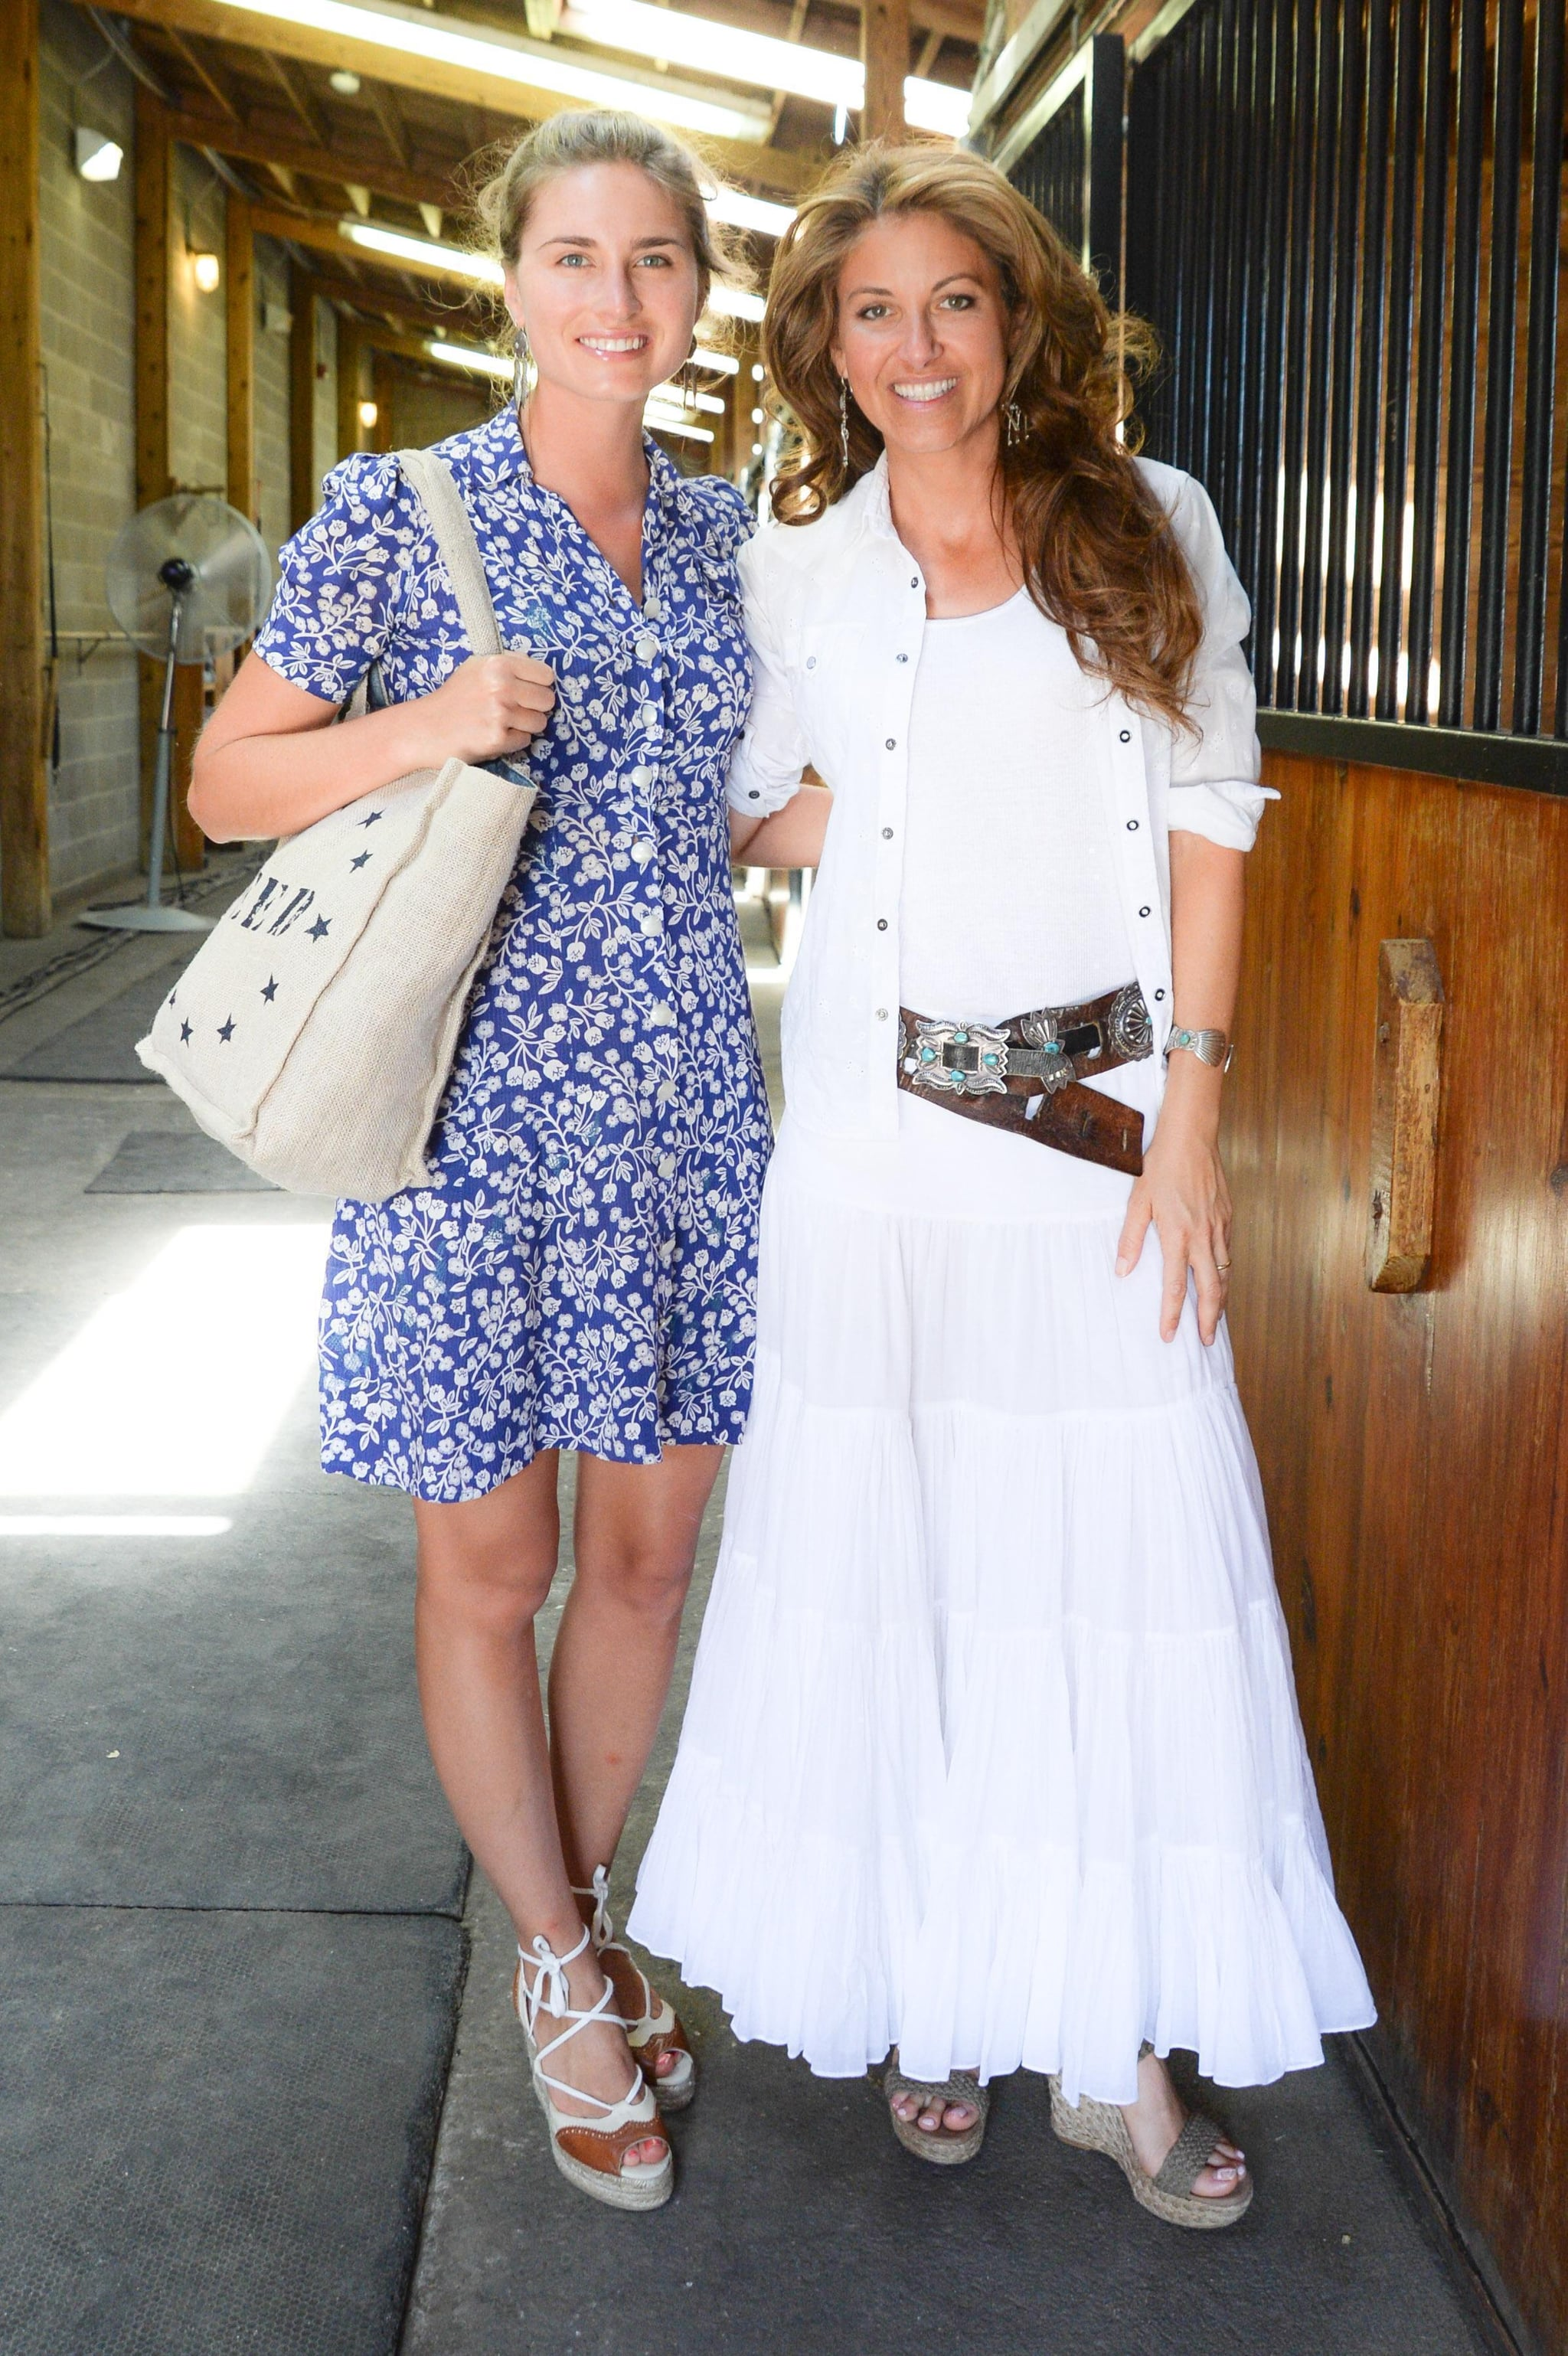 In Sagaponack, Lauren Bush Lauren and Dylan Lauren took in the adorable fashions at the Ralph Lauren Girls show.